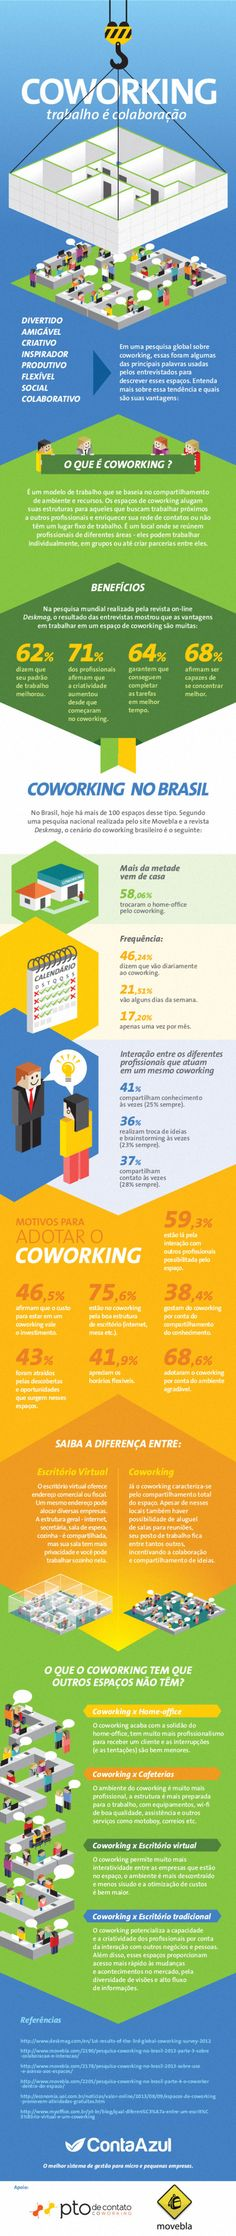 Infográfico sobre coworking